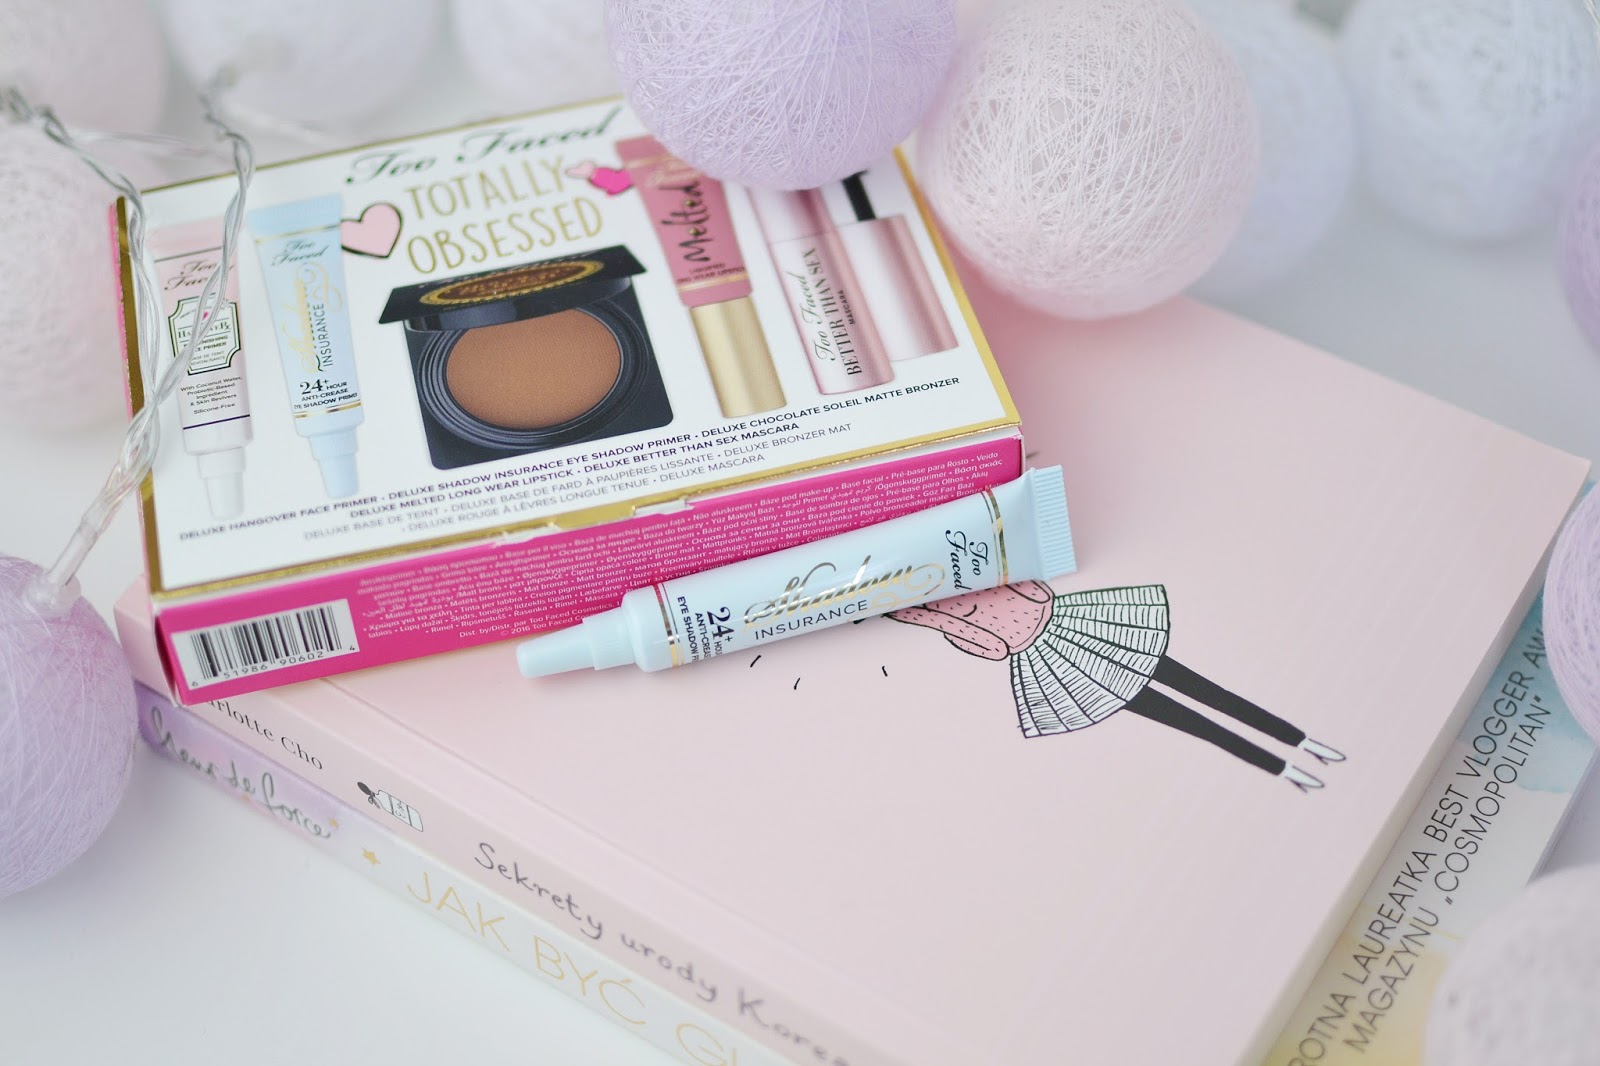 too faced TOTALLY OBSESSED